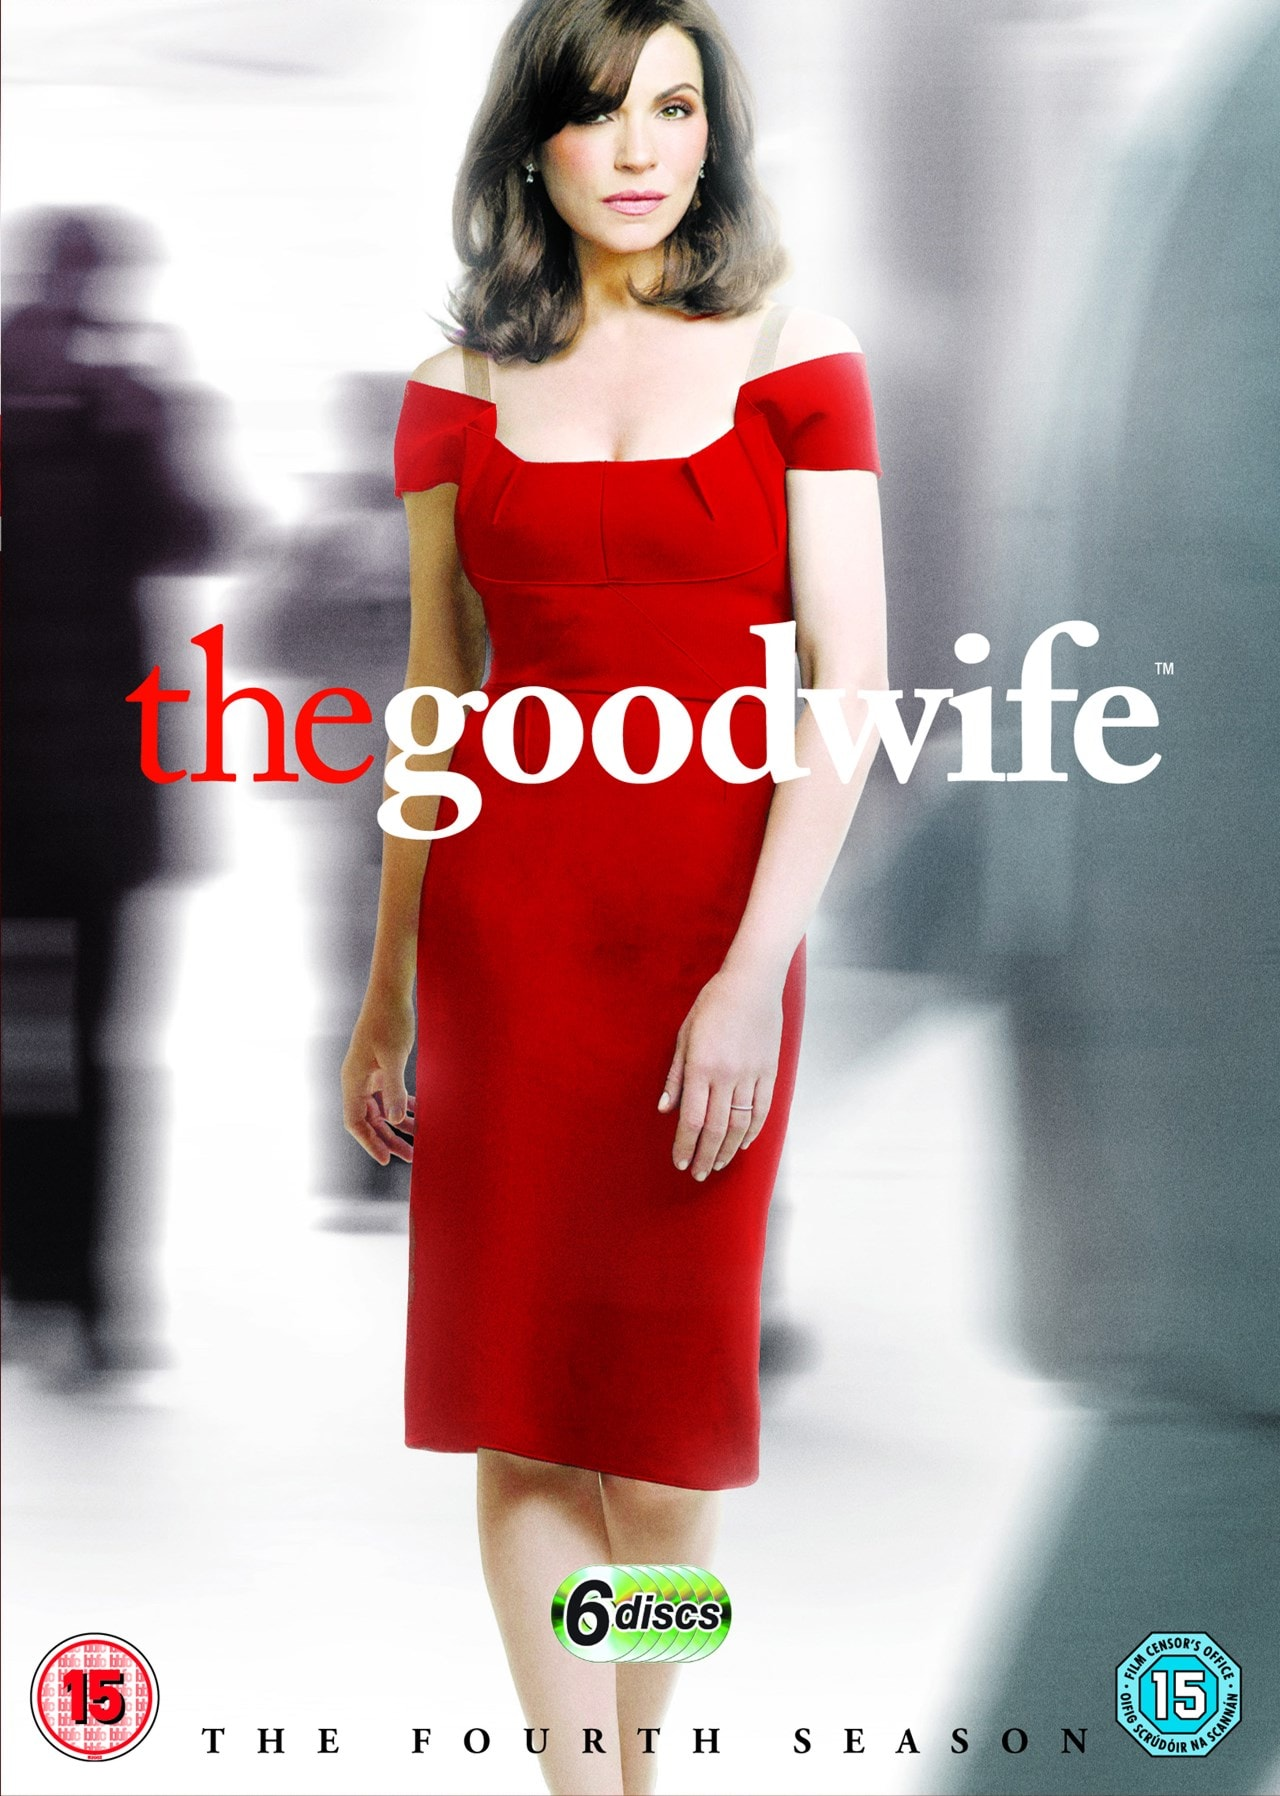 The Good Wife: Season 4 - 1